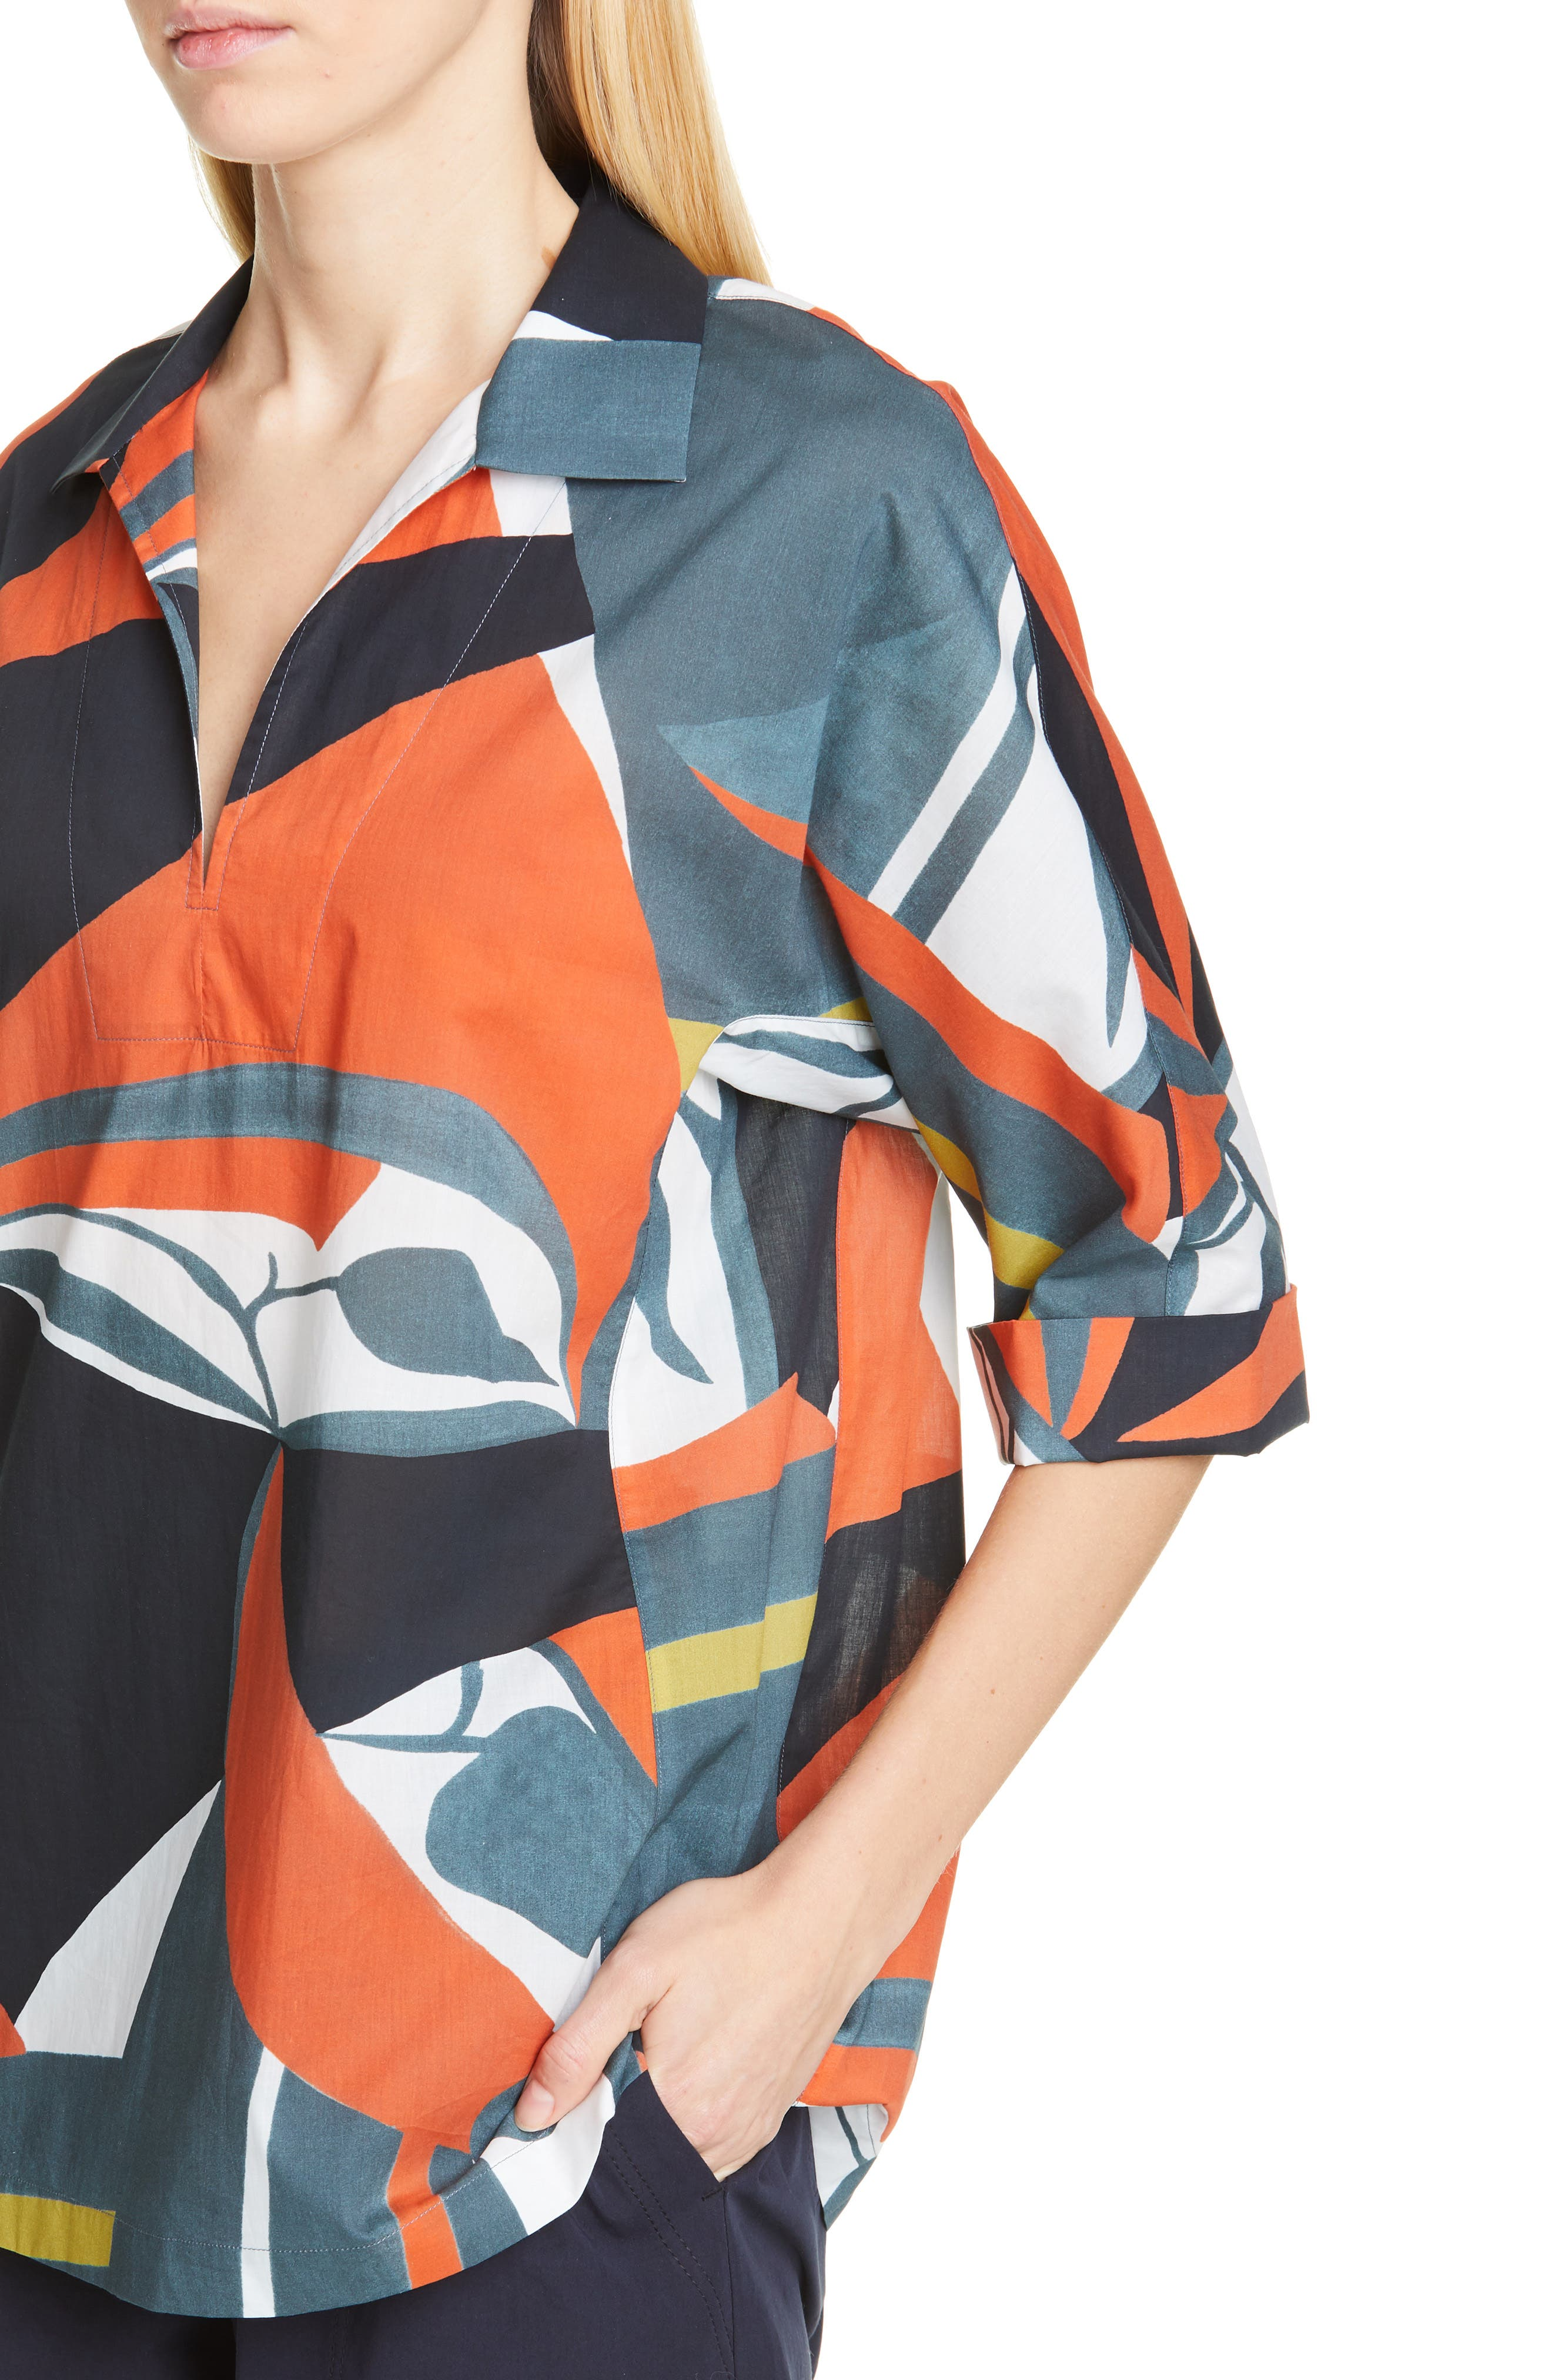 LAFAYETTE 148 NEW YORK, Nicole Artisan Abstract Print Top, Alternate thumbnail 5, color, ATLANTIS TEAL MULTI